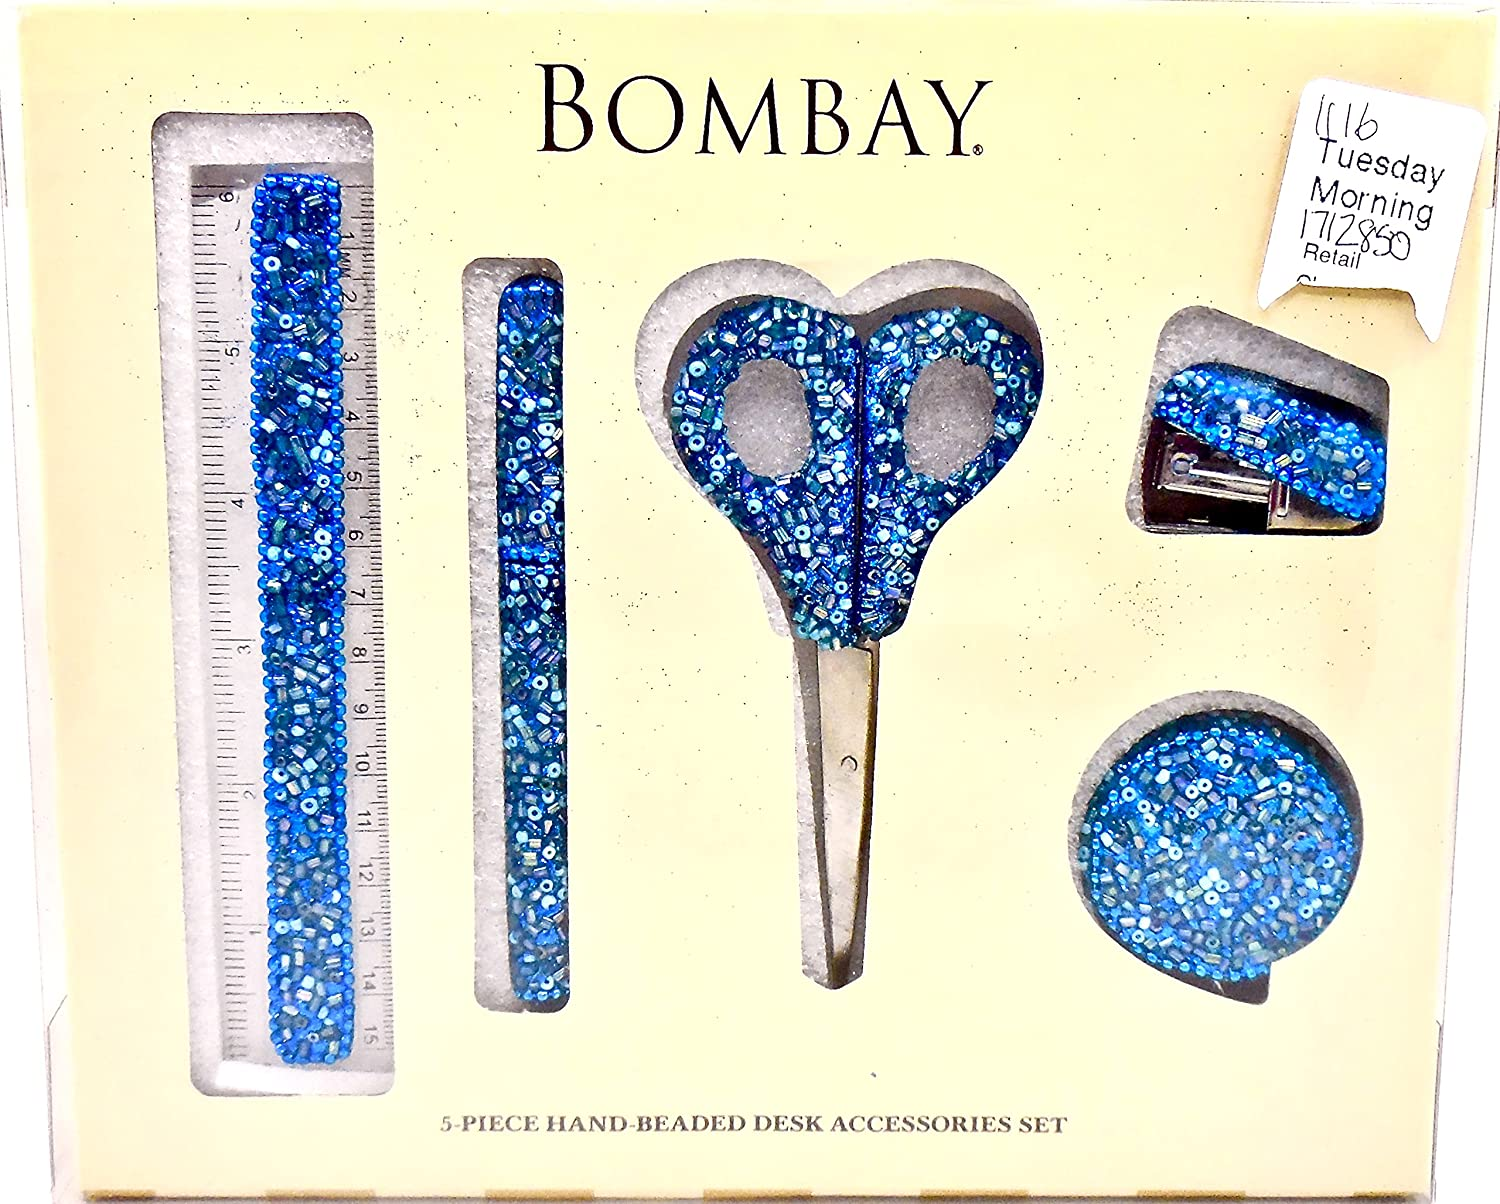 Amazon.com : Bombay Sequined Desk Accessories Set, Hand Beaded, 5 ...